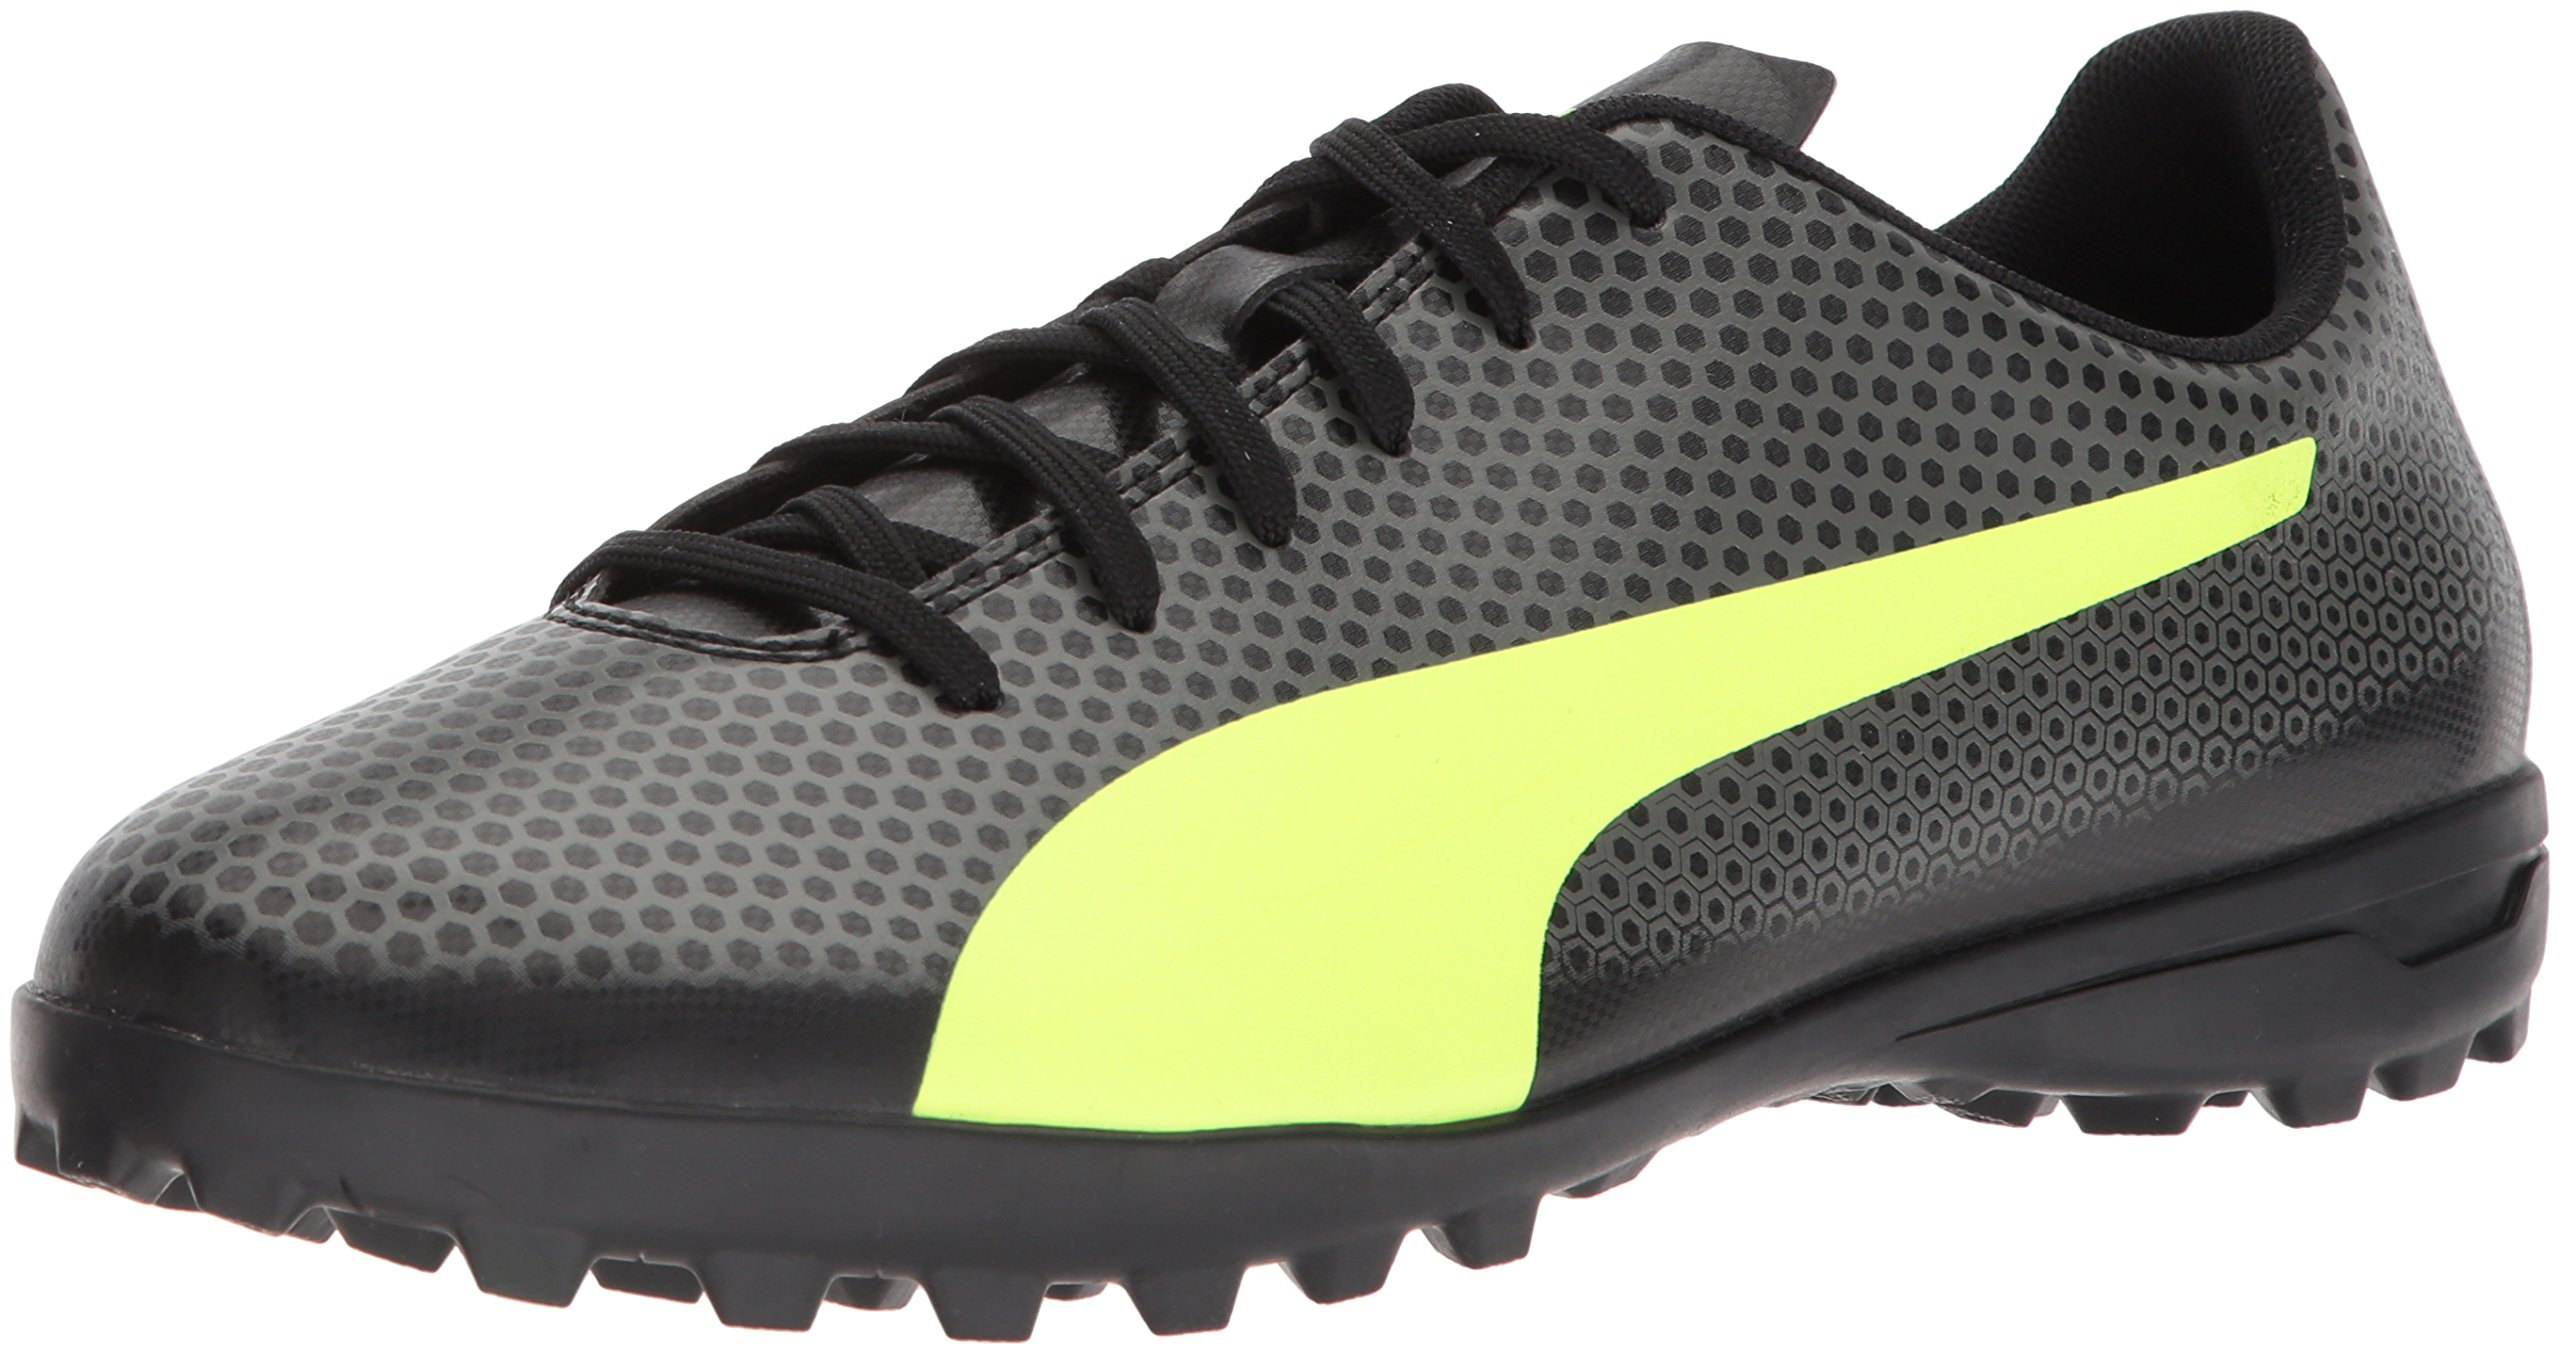 PUMA Men's Spirit Turf Trainer Soccer Shoe, Black-Fizzy Yellow-Castor Gray, 8.5 M US by PUMA